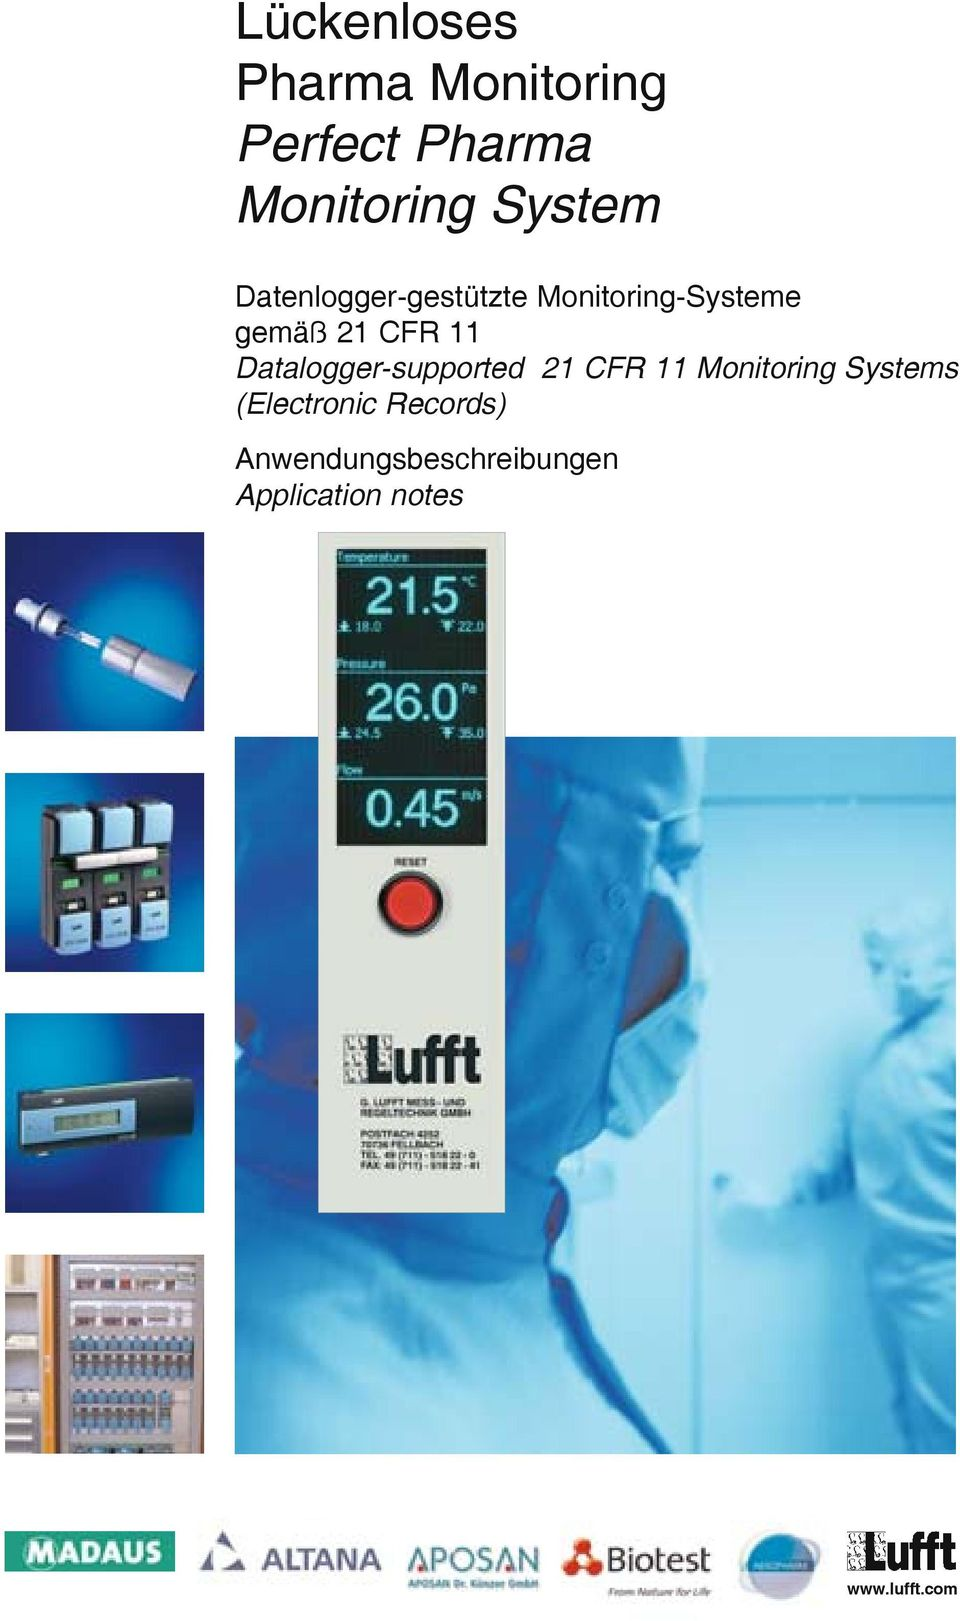 11 Datalogger-supported 21 CFR 11 Monitoring Systems